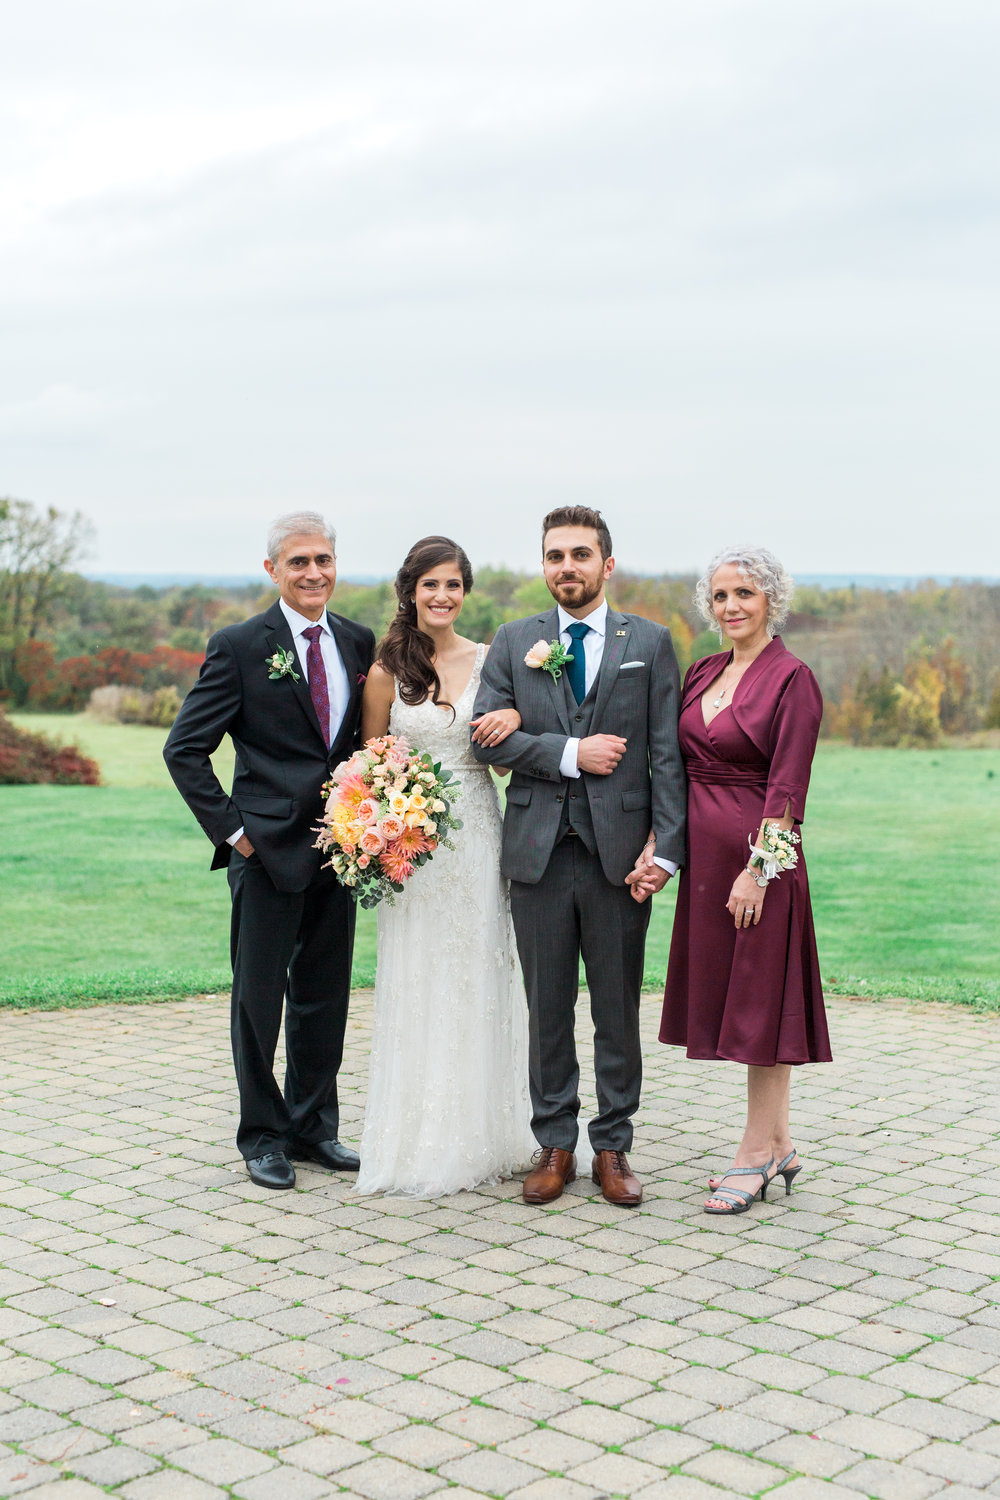 Amir-Golbazi-Danielle-Giroux-Photography_Toronto-Wedding_Cedarwood_Rachel-Paul_378.jpg